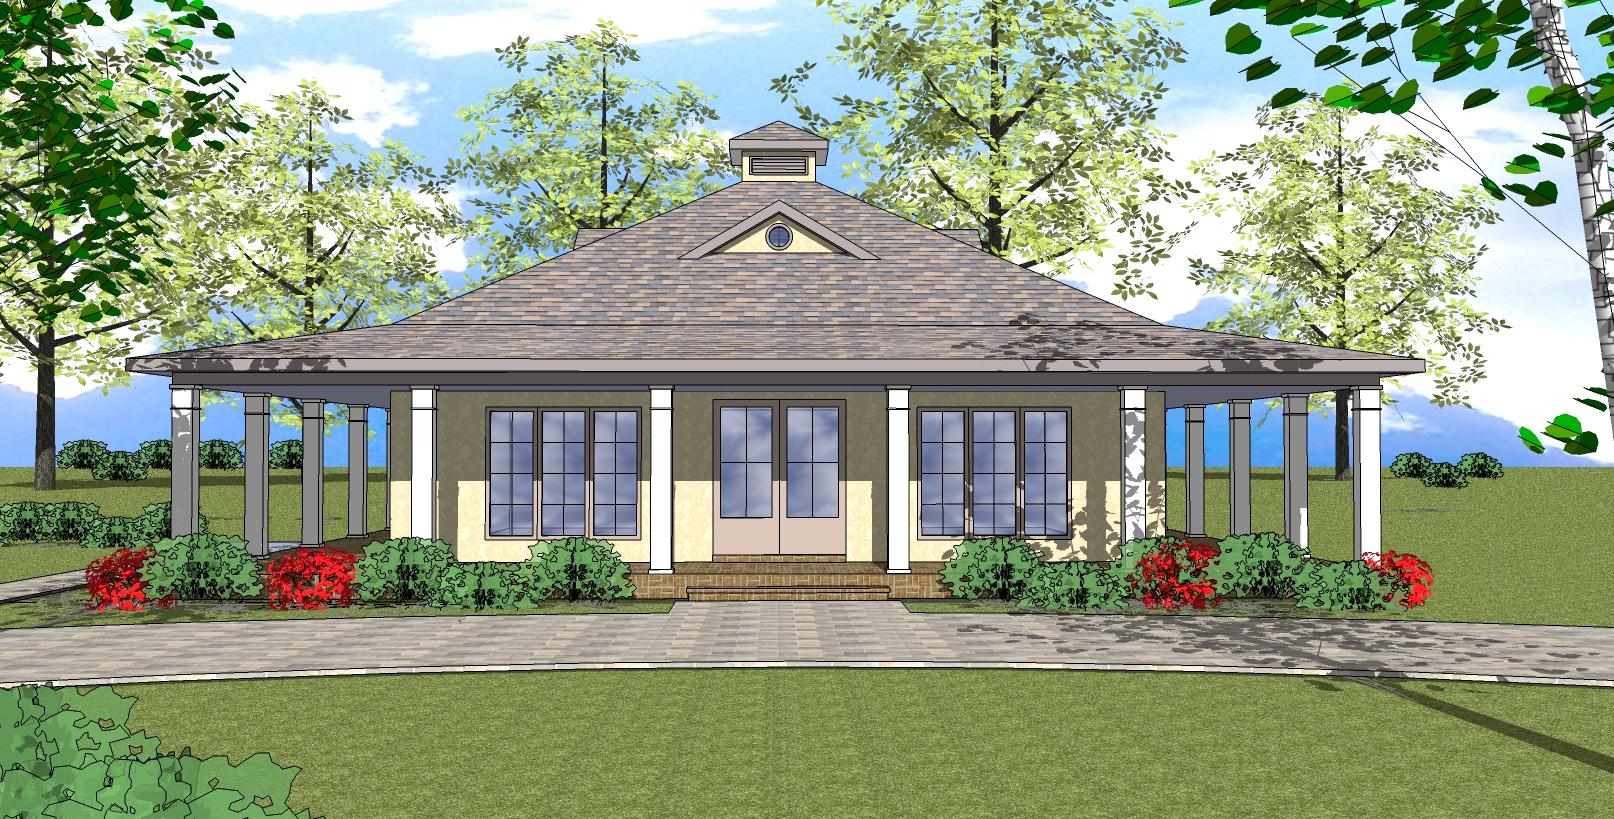 Southern house plan 155 1006 2 bedrm 1225 sq ft home for Southern homes florida